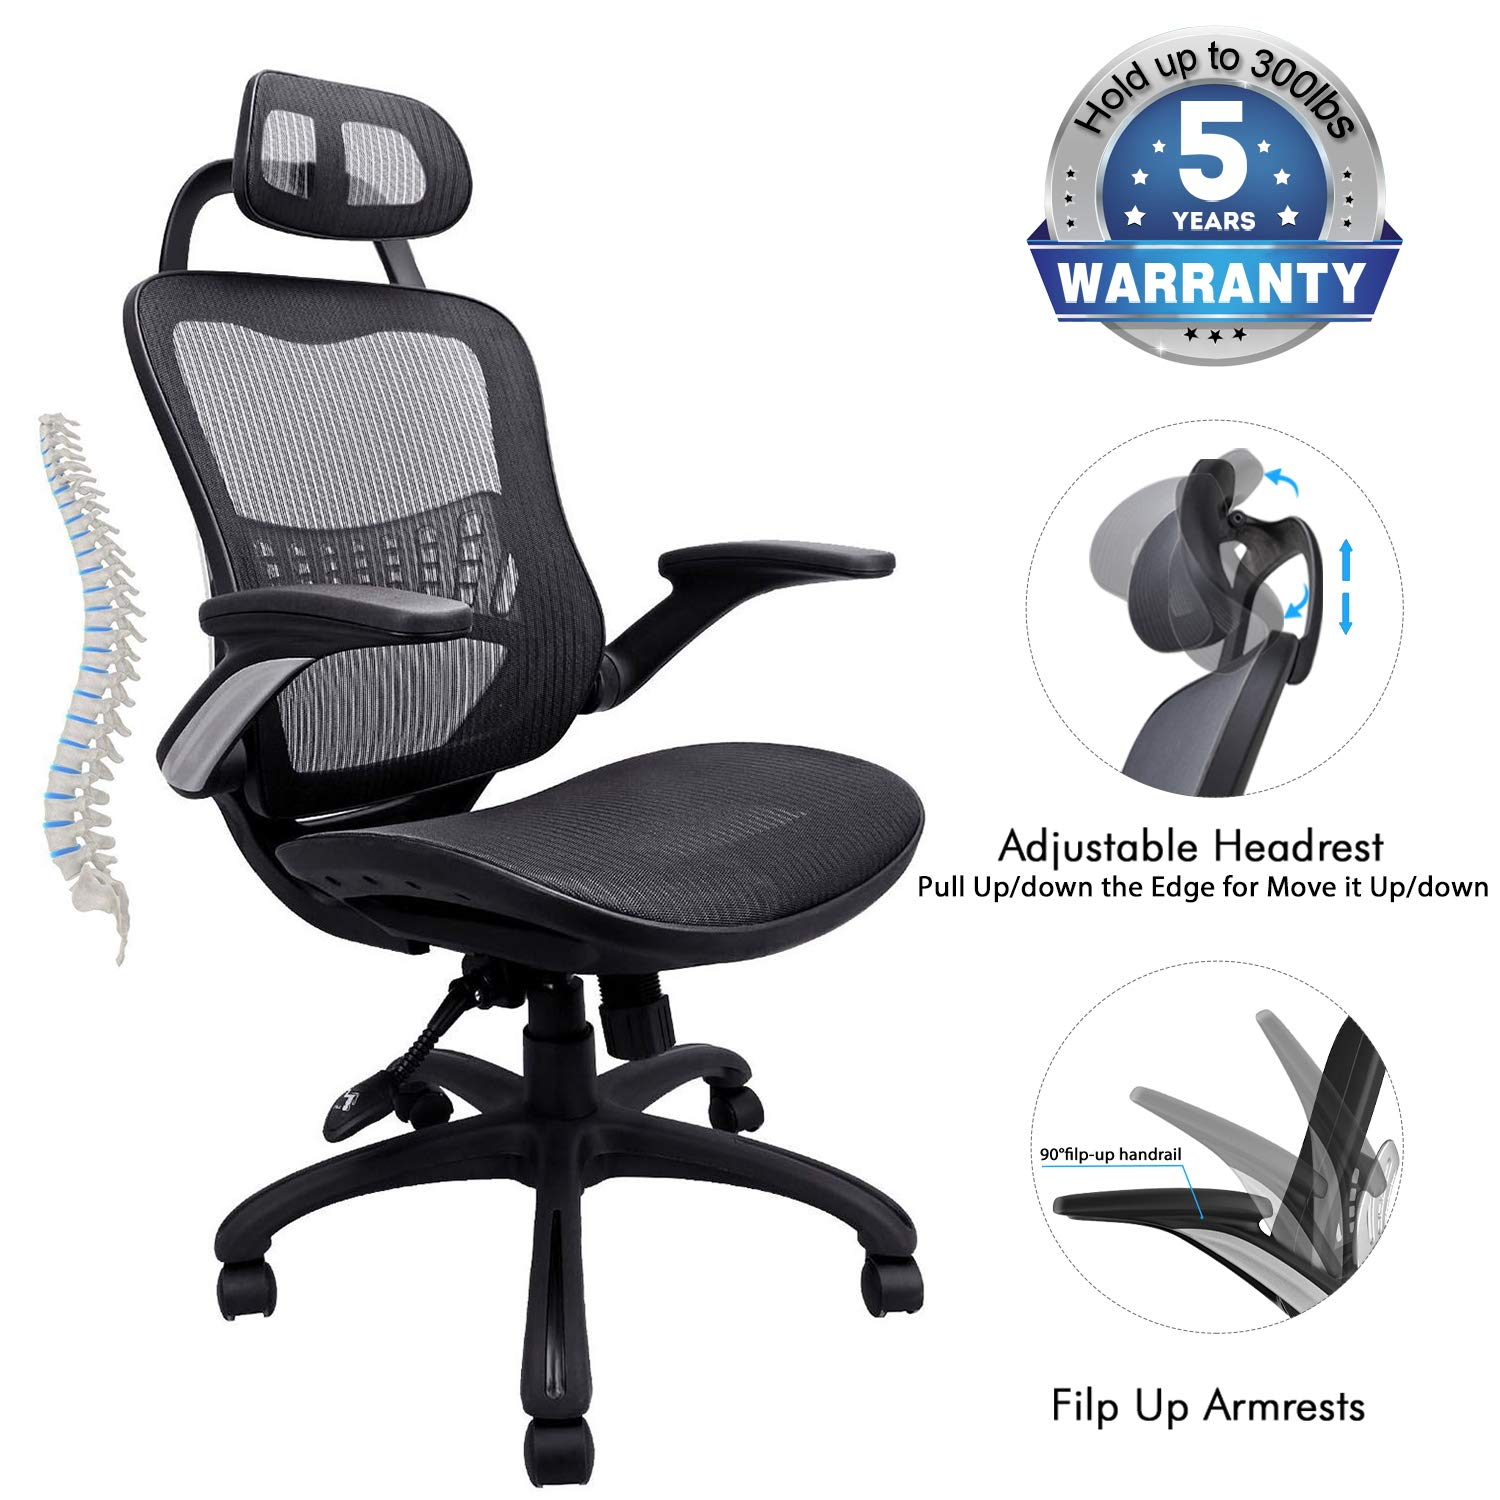 Ergonomic Office Chair, 5 Years Warrenty Weight Support 300Ibs,High Back Mesh Office Chairs with Adjustable Headrest,Backrest and Flip-up Armrests,Executive Office Chair for Height Under 6' by Ergousit